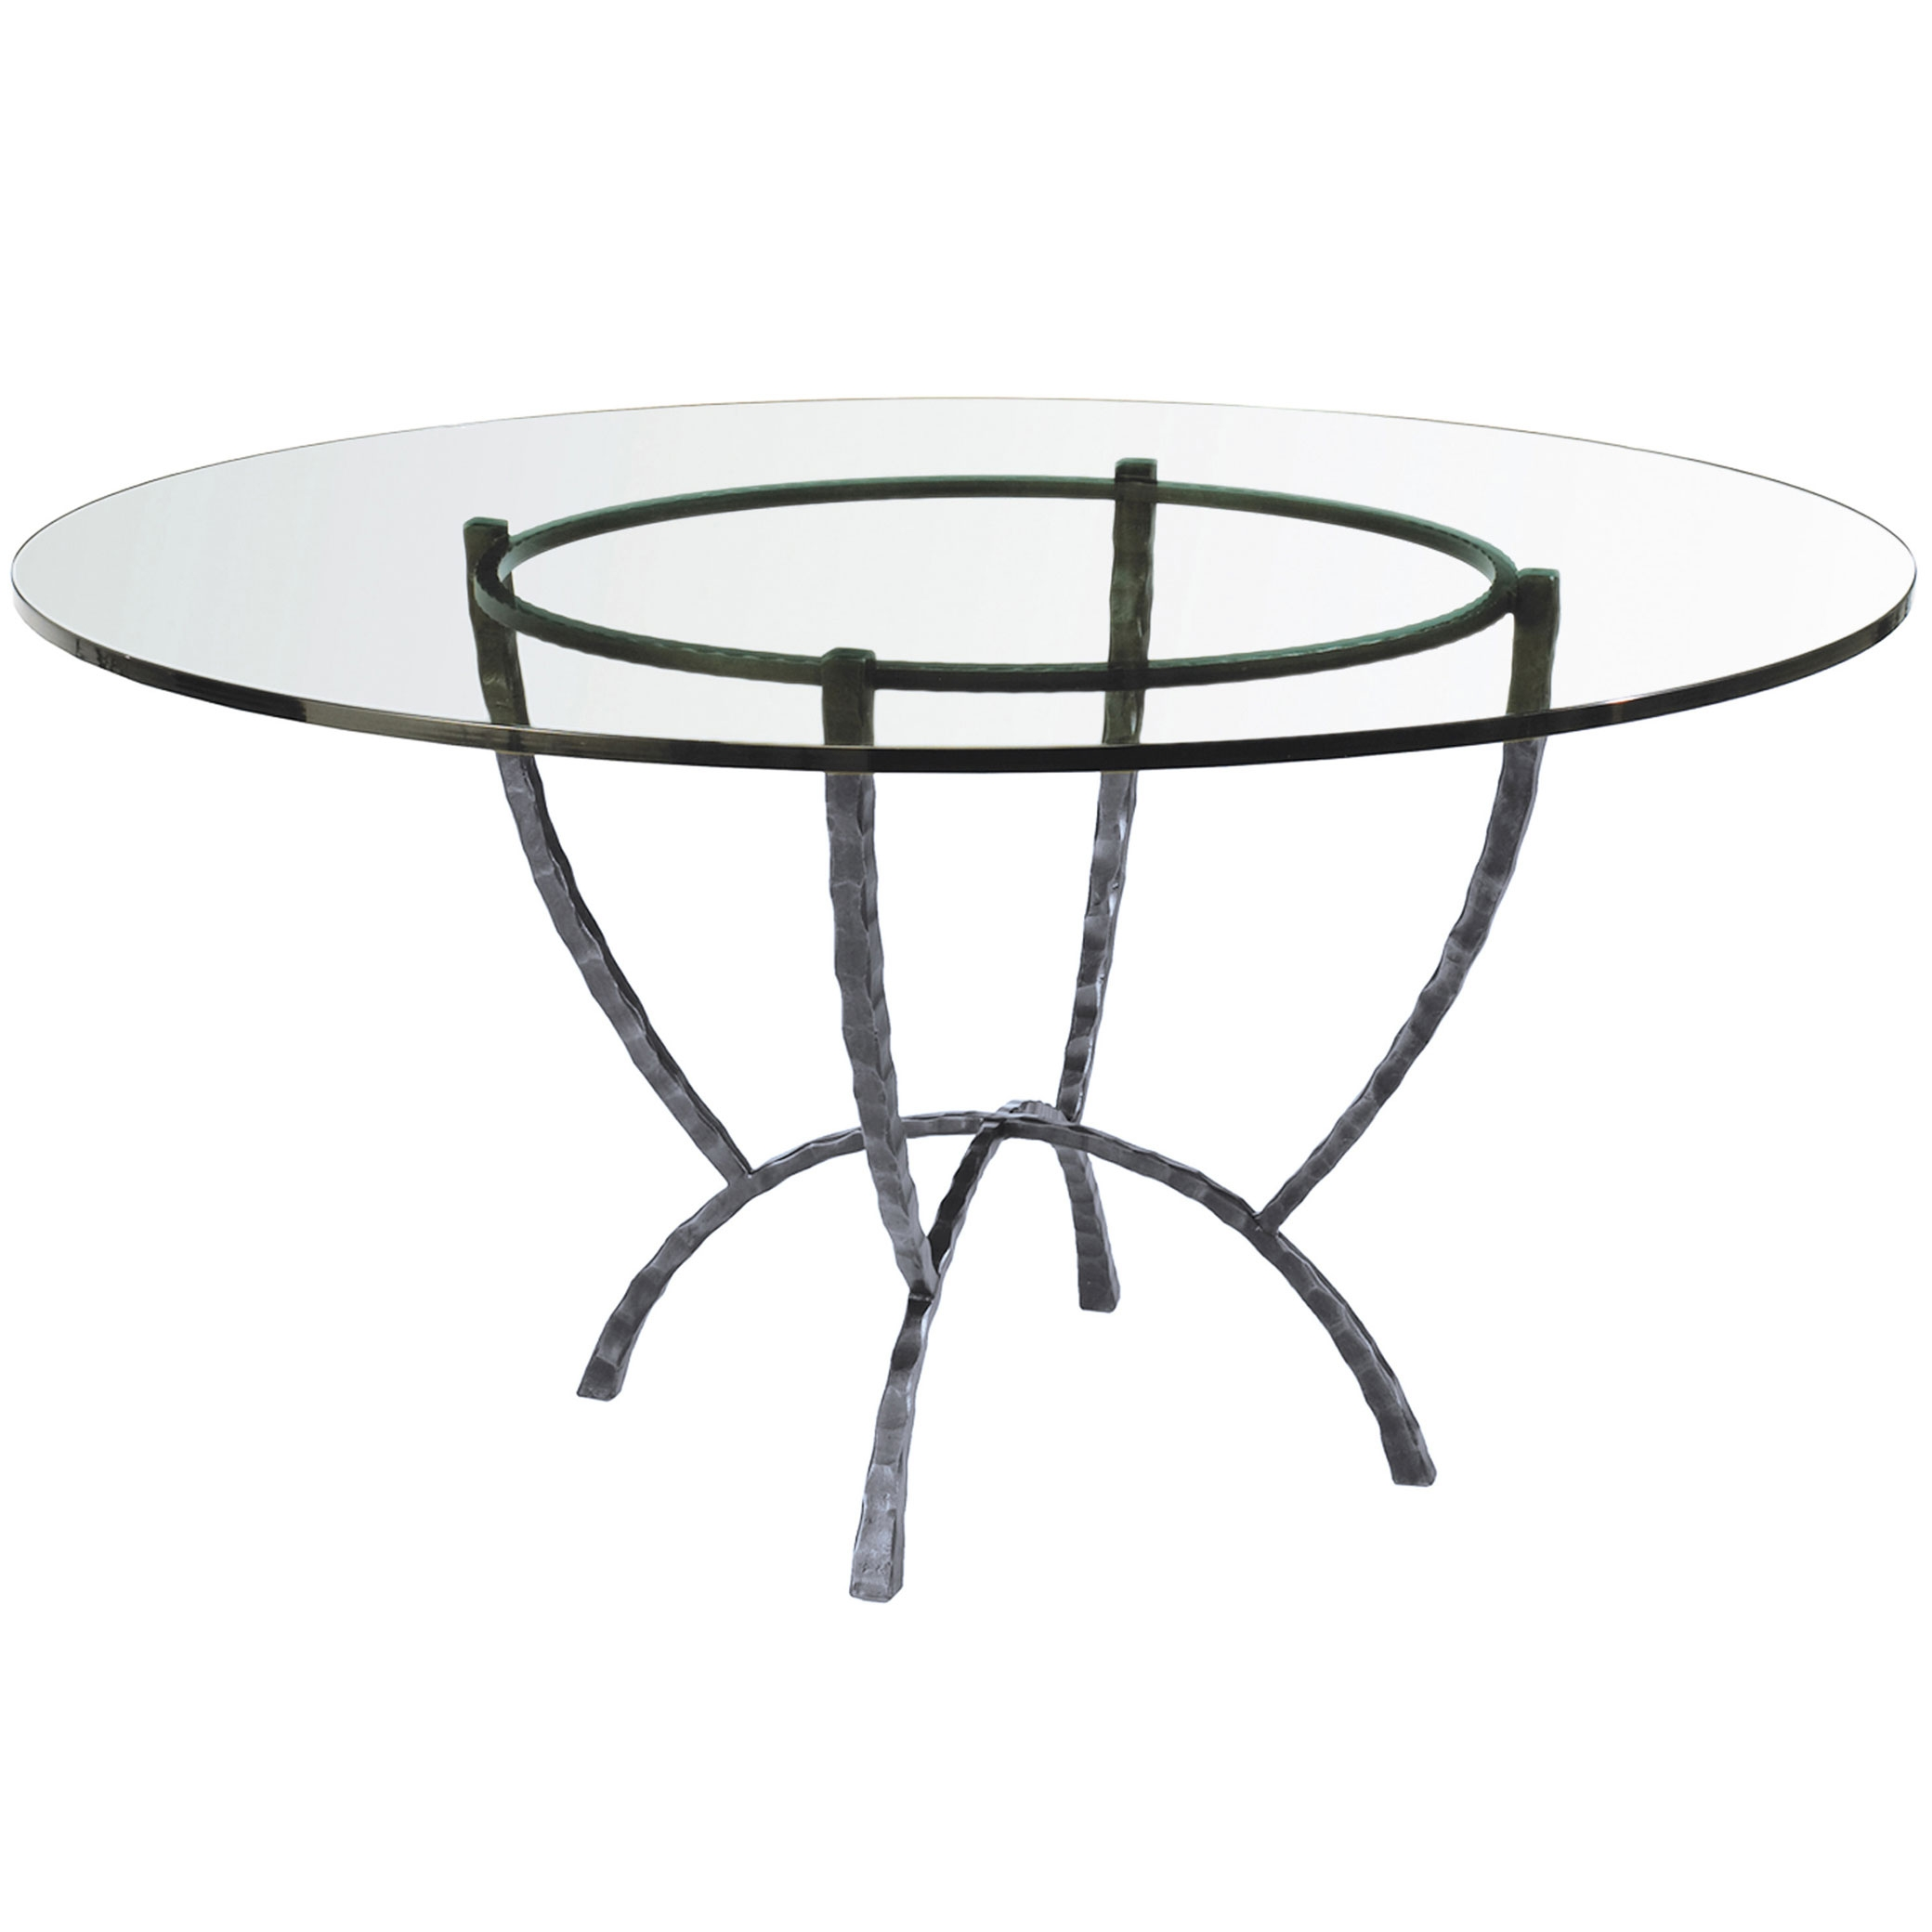 Wrought iron hudson 50 round dining table hudson round dining table by charleston forge geotapseo Images